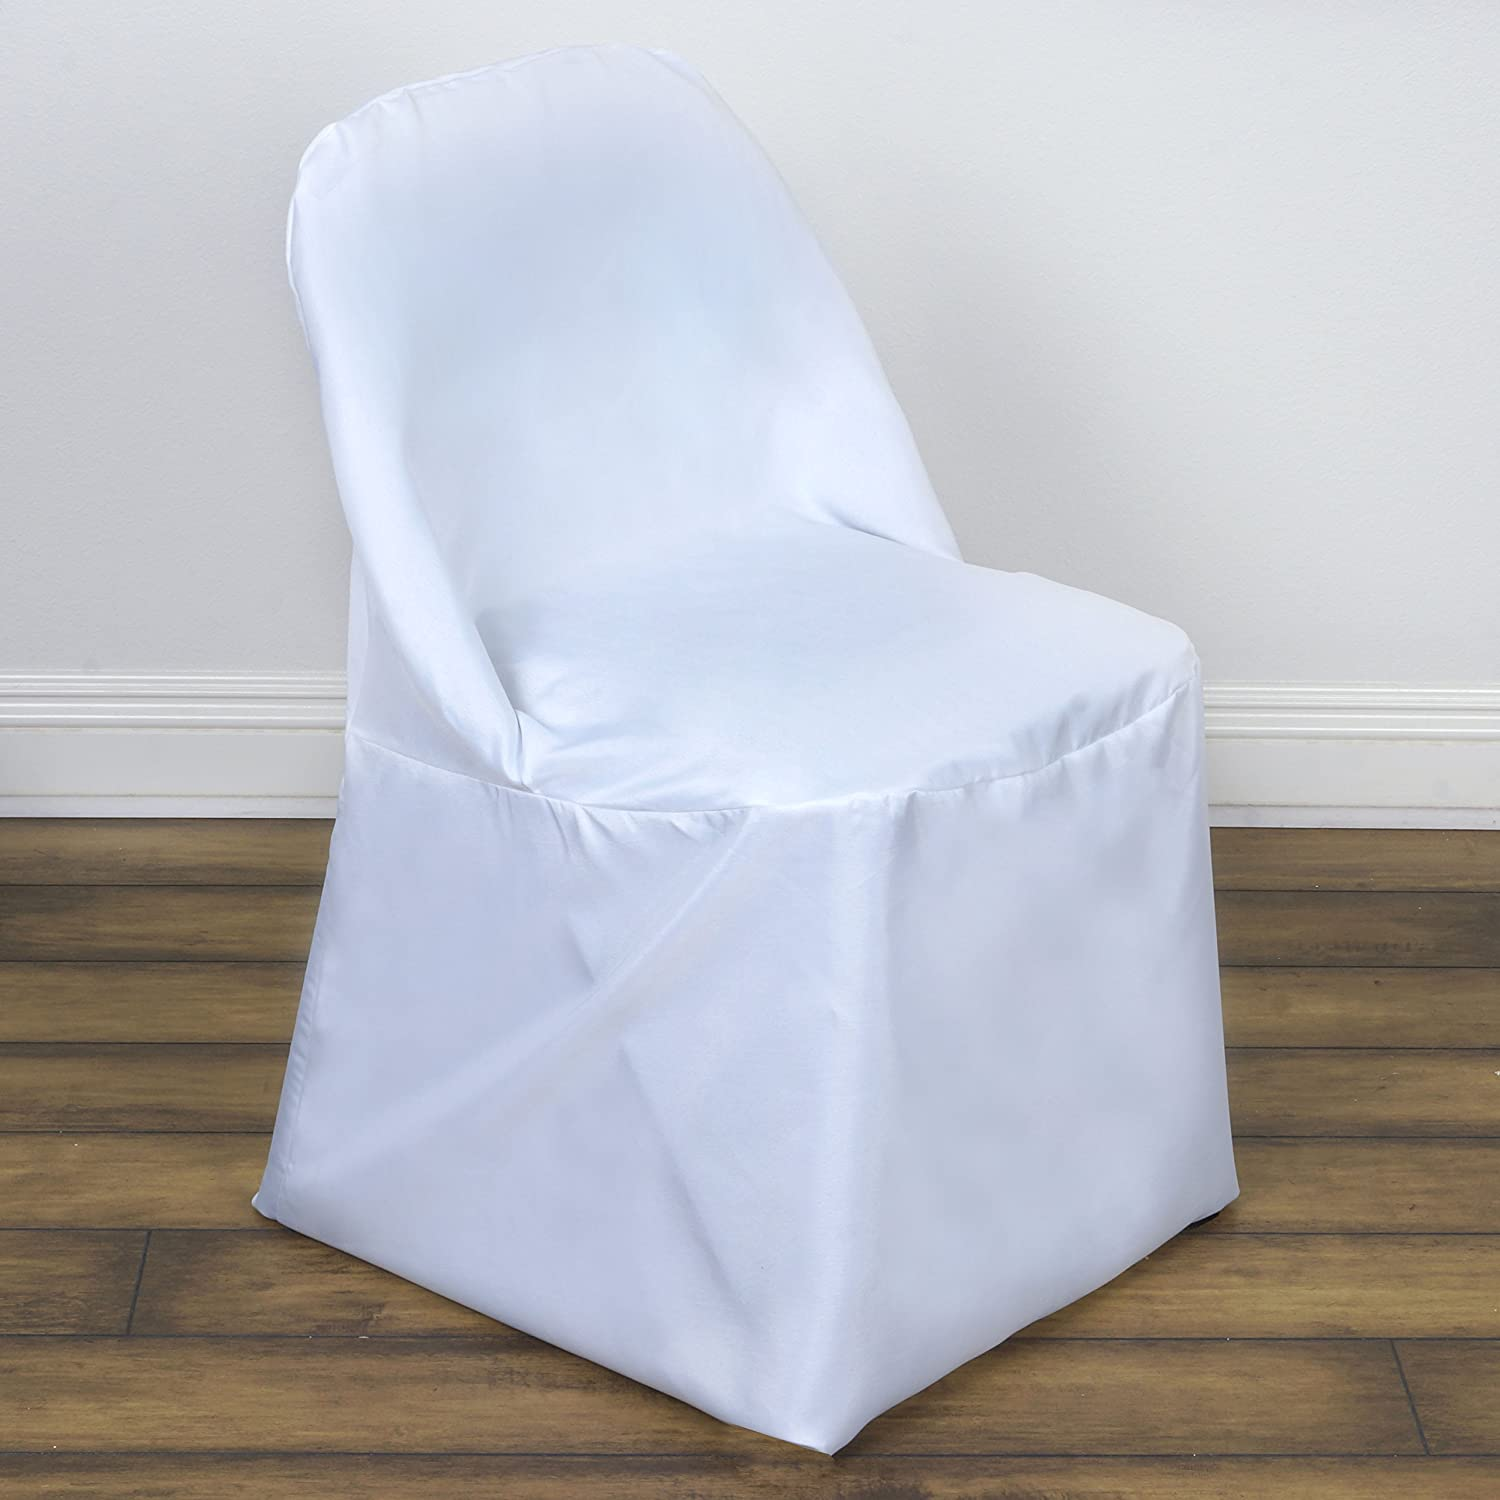 Amazon.com: BalsaCircle 50 pcs White Folding Round Polyester Chair ...